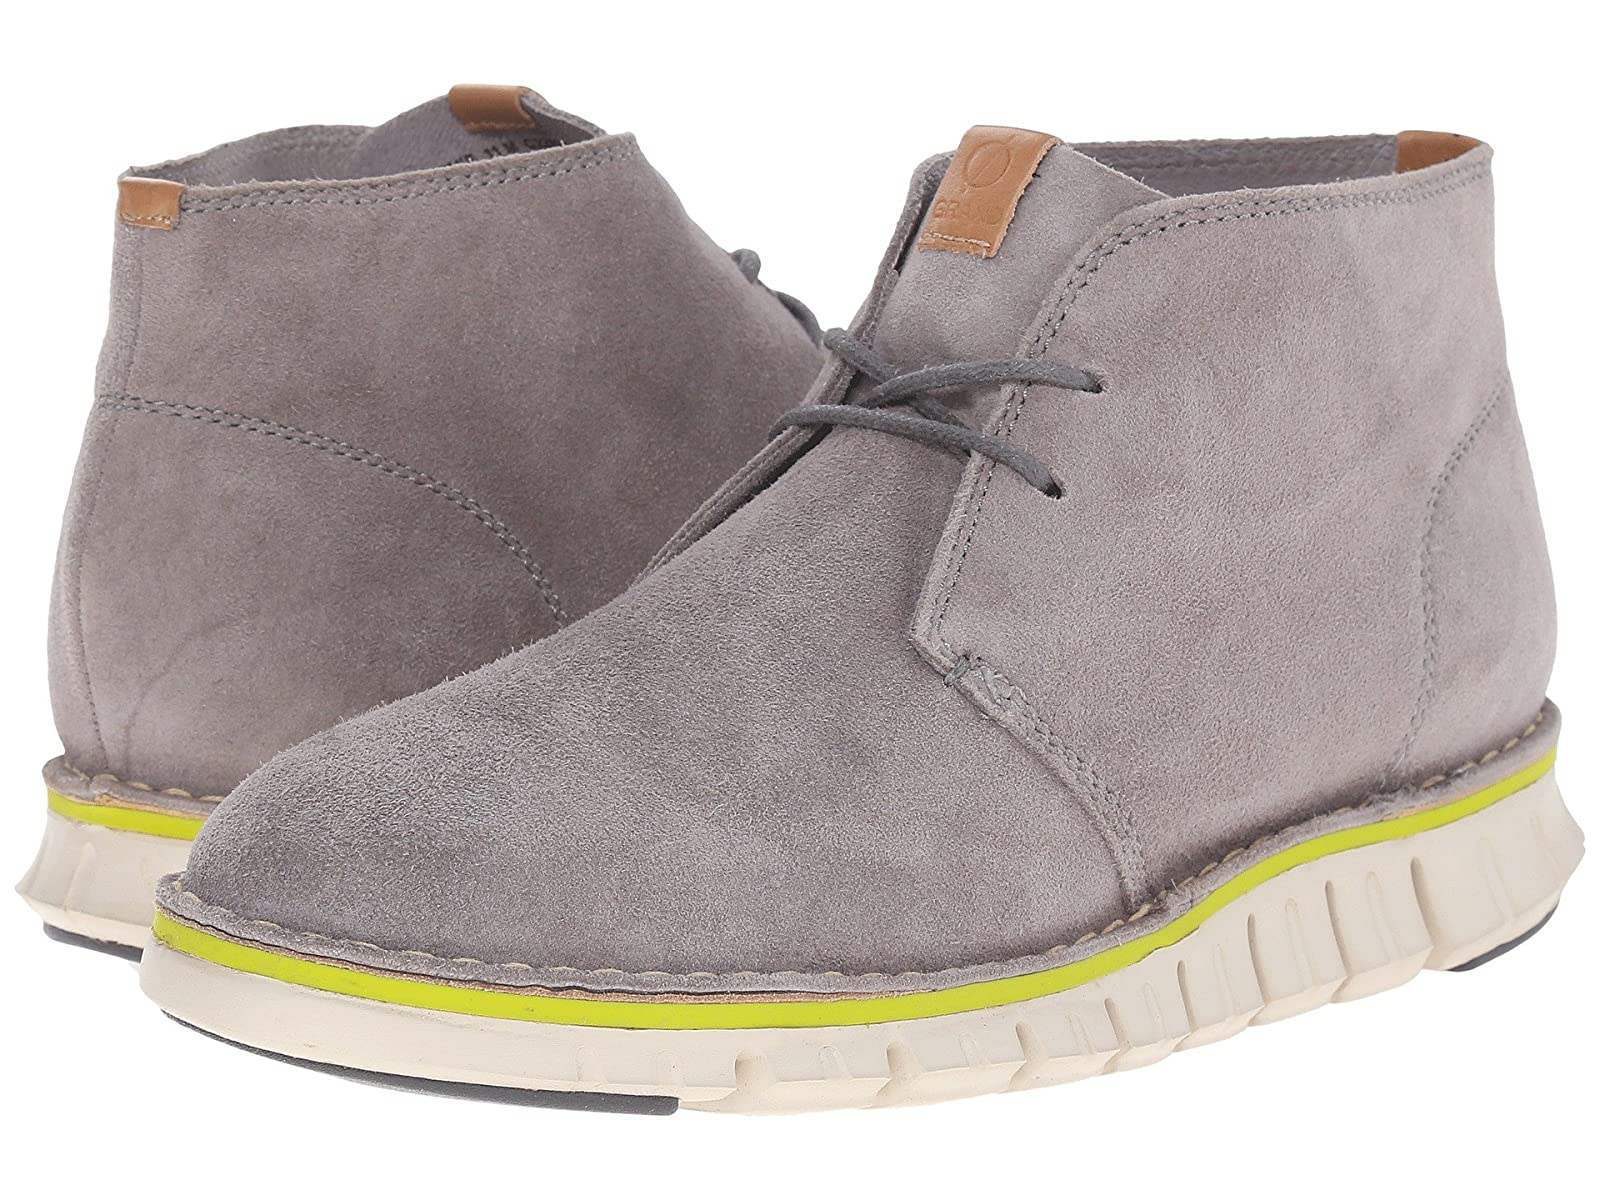 Cole Haan ZeroGrand Stitch Out ChukkaCheap and distinctive eye-catching shoes